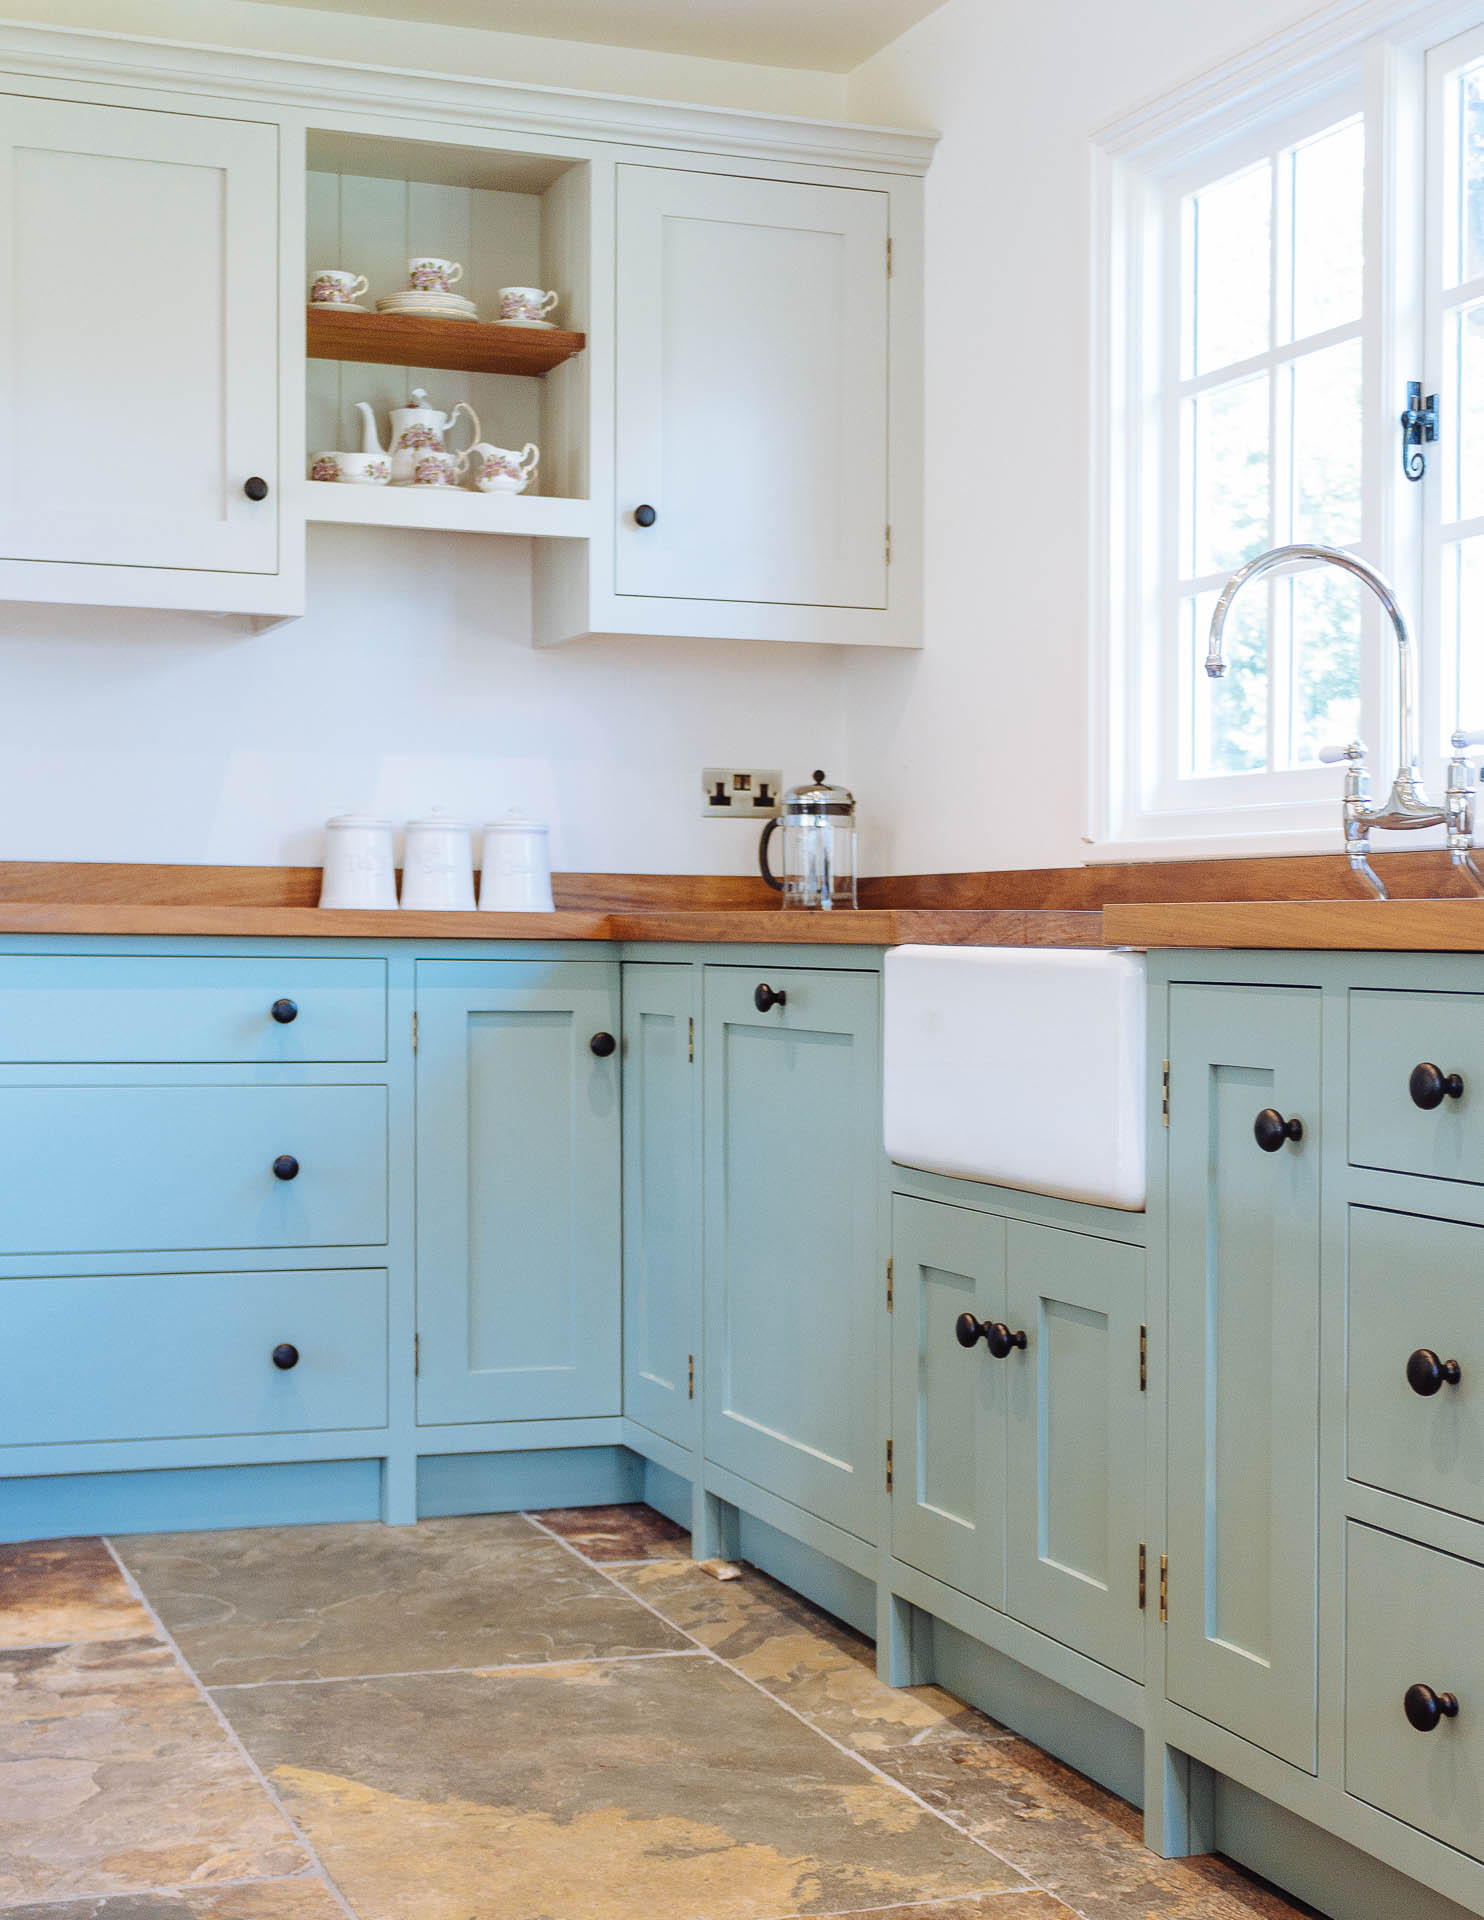 Foxes Hill Kitchen with Belfast sink, Perrin & Rowe 'Astbury' chrome taps, Iroko work surface, finished with Danish oil